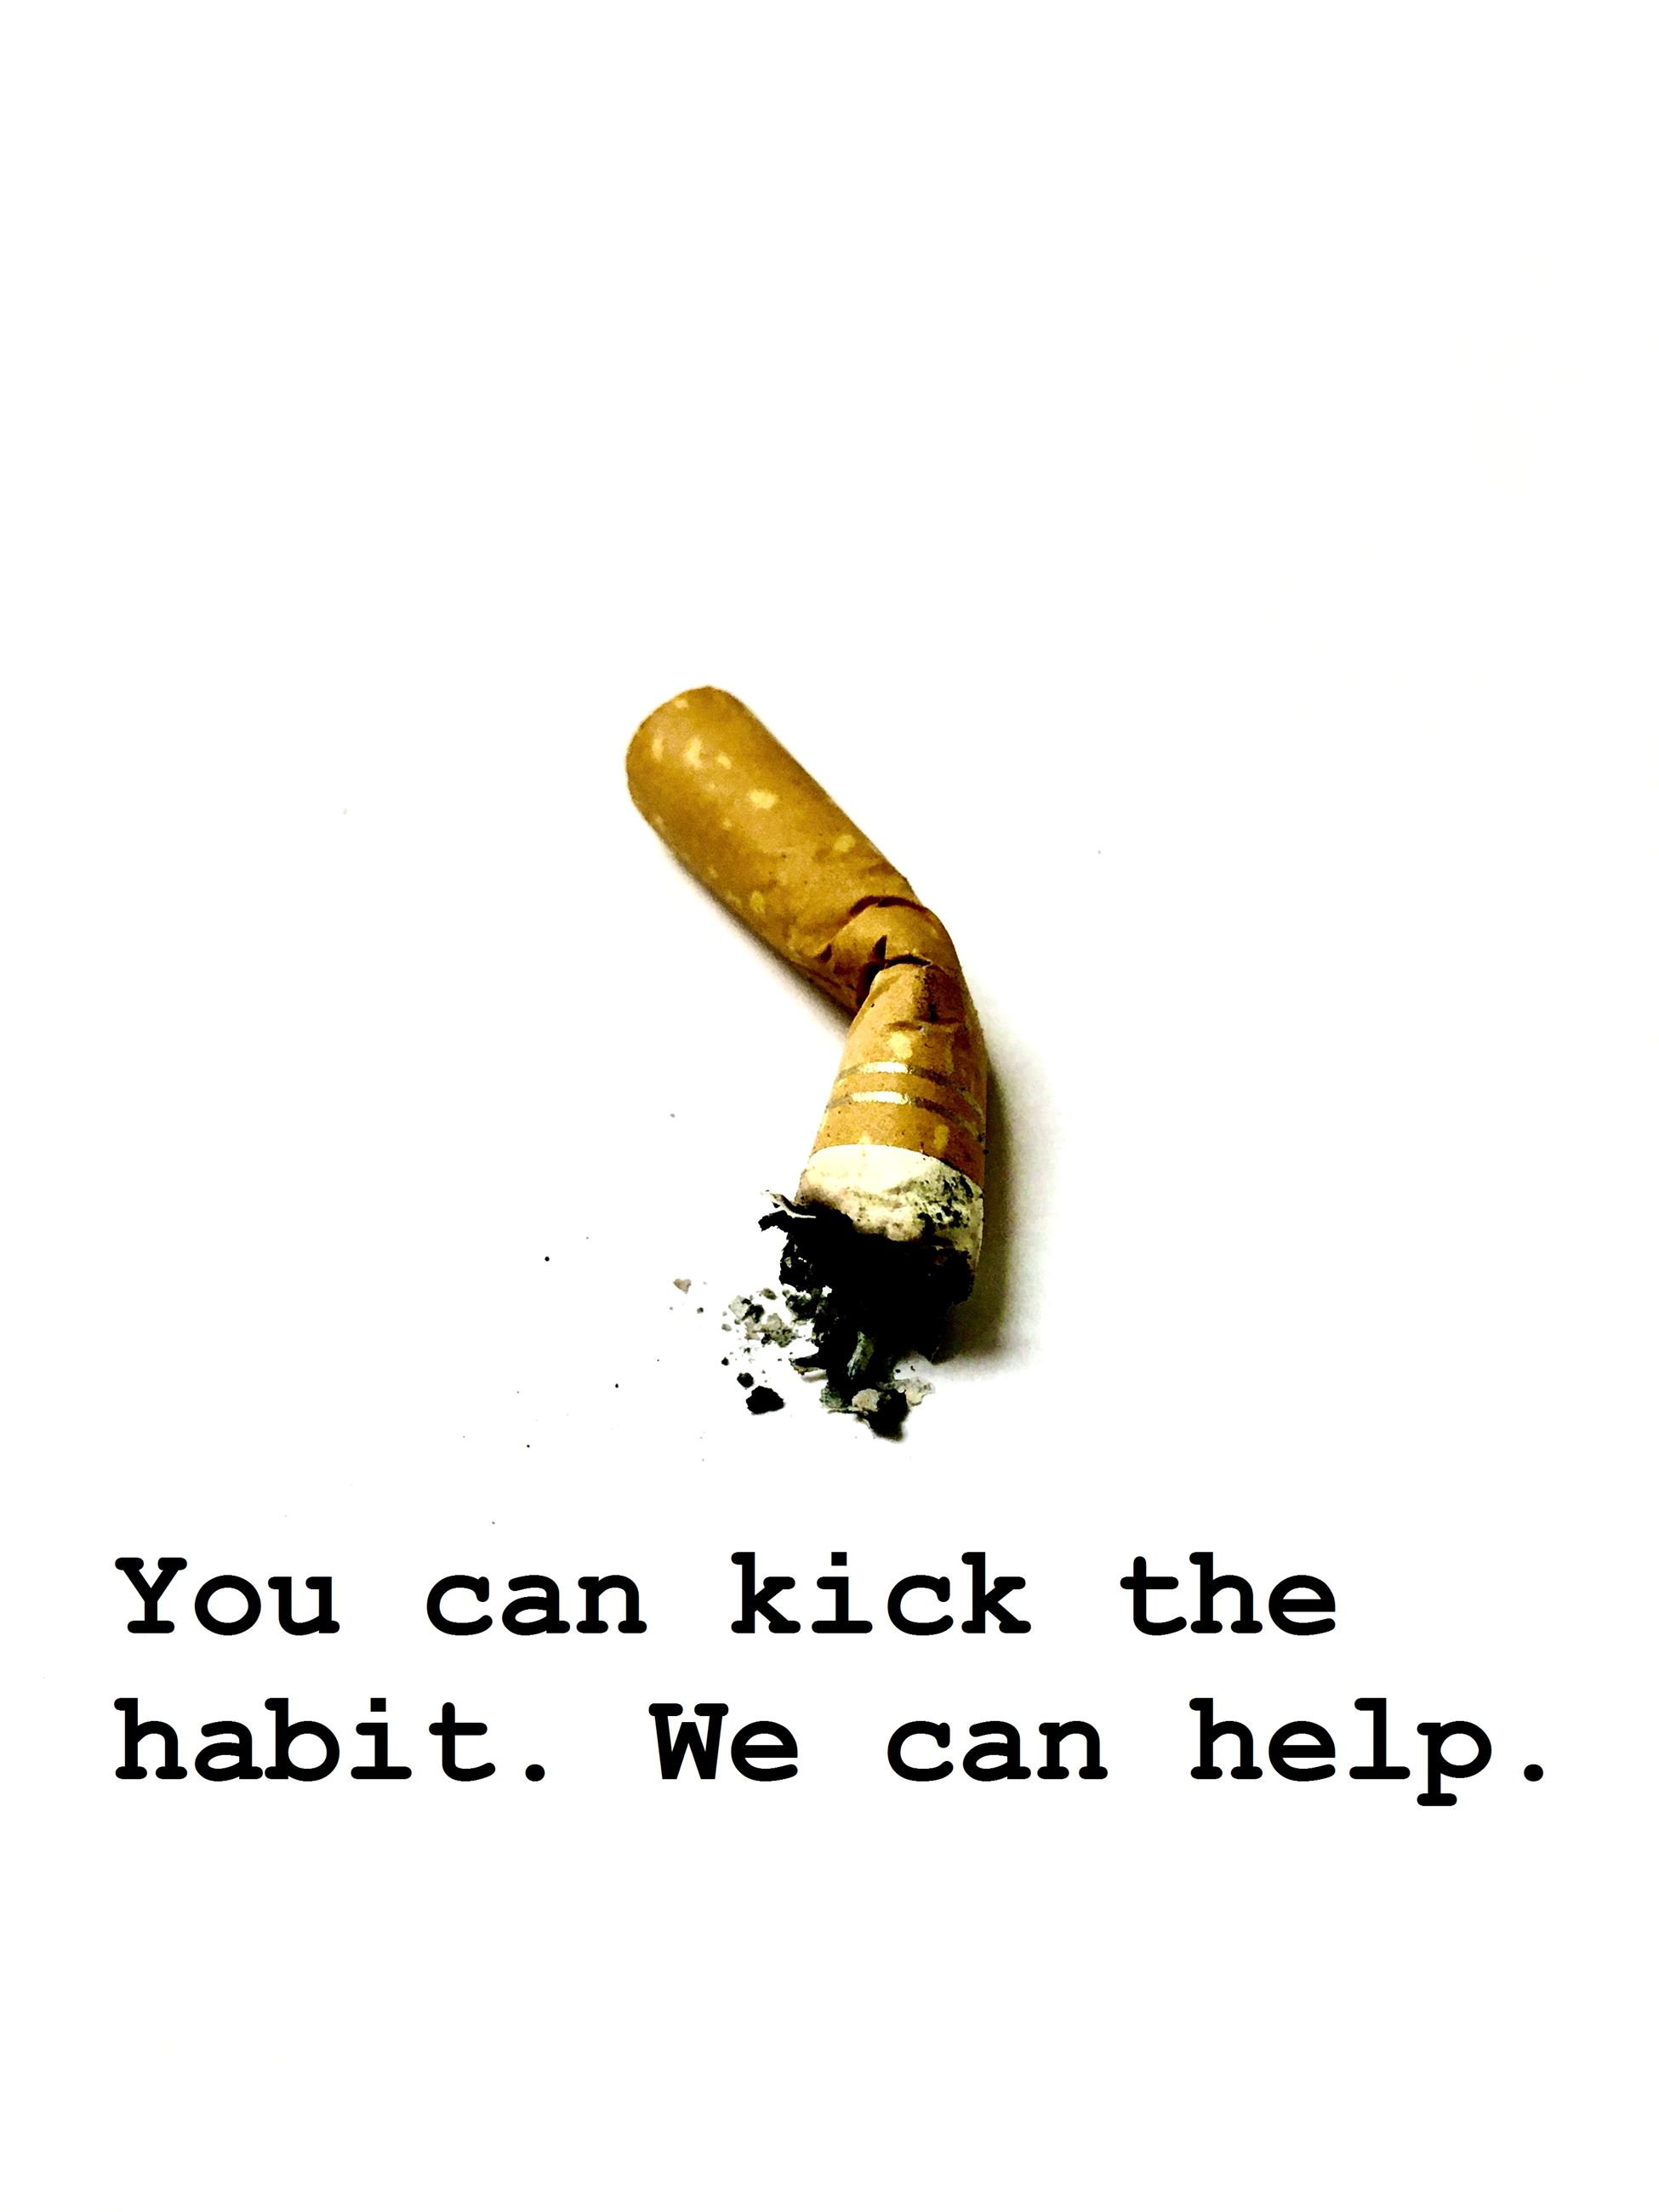 You can kick the habit. We can help.